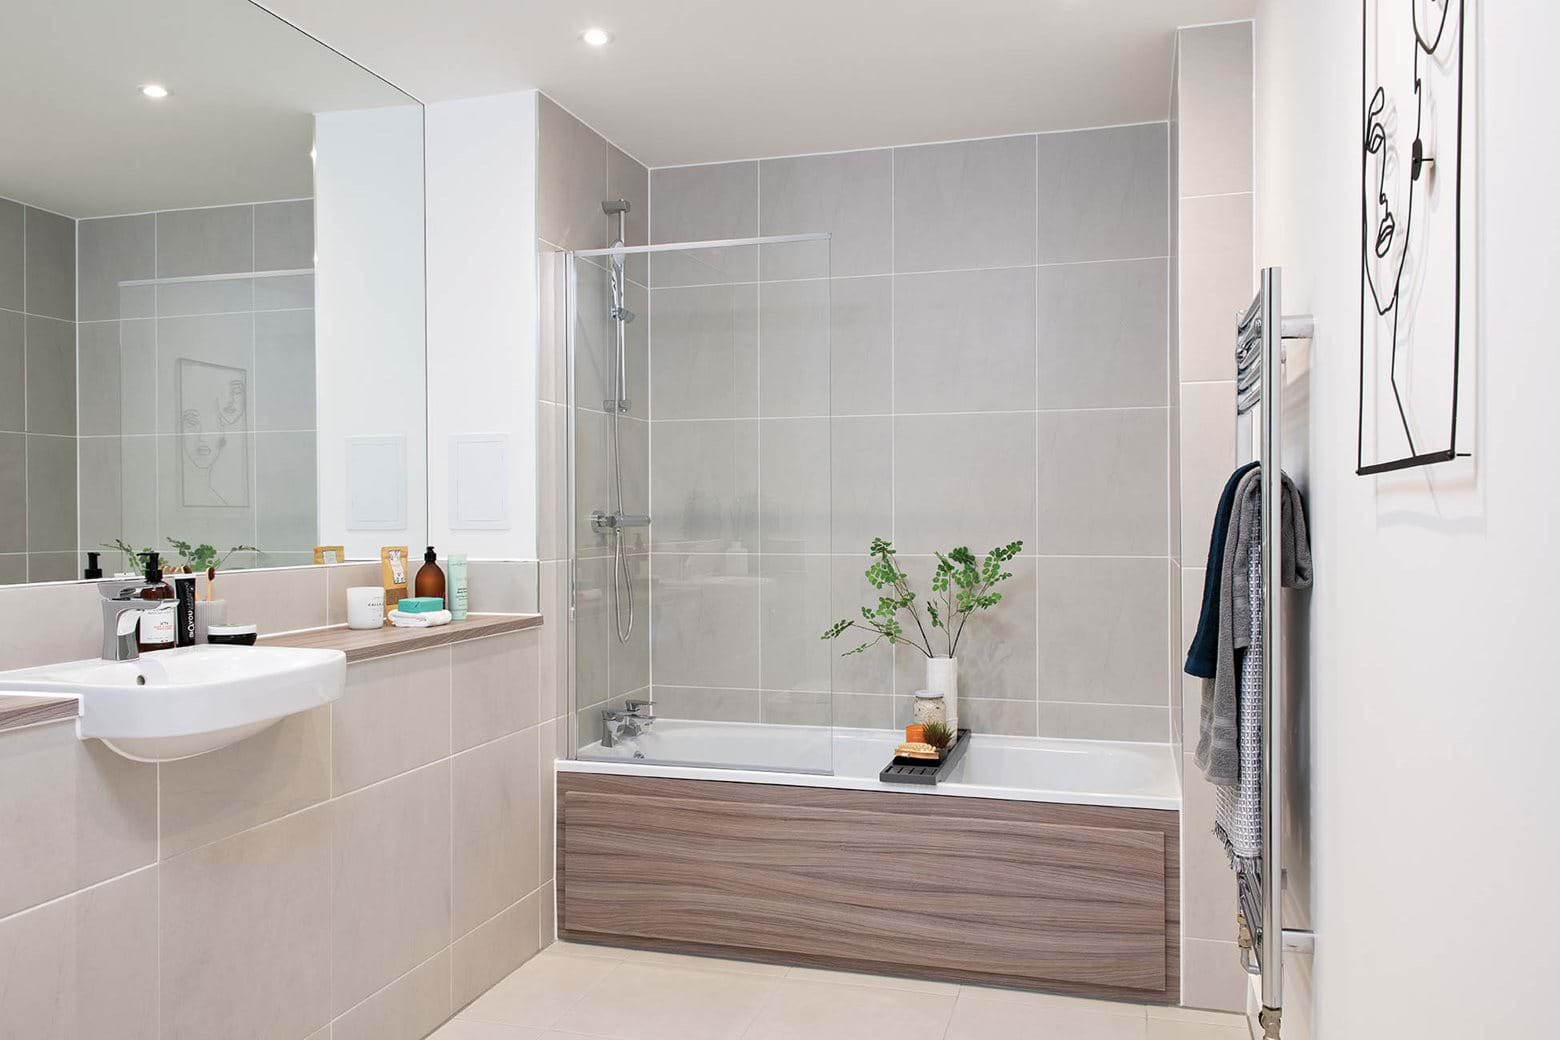 Greenway atBeckton Parkside | 2 Bed-Show Home - Bathroom